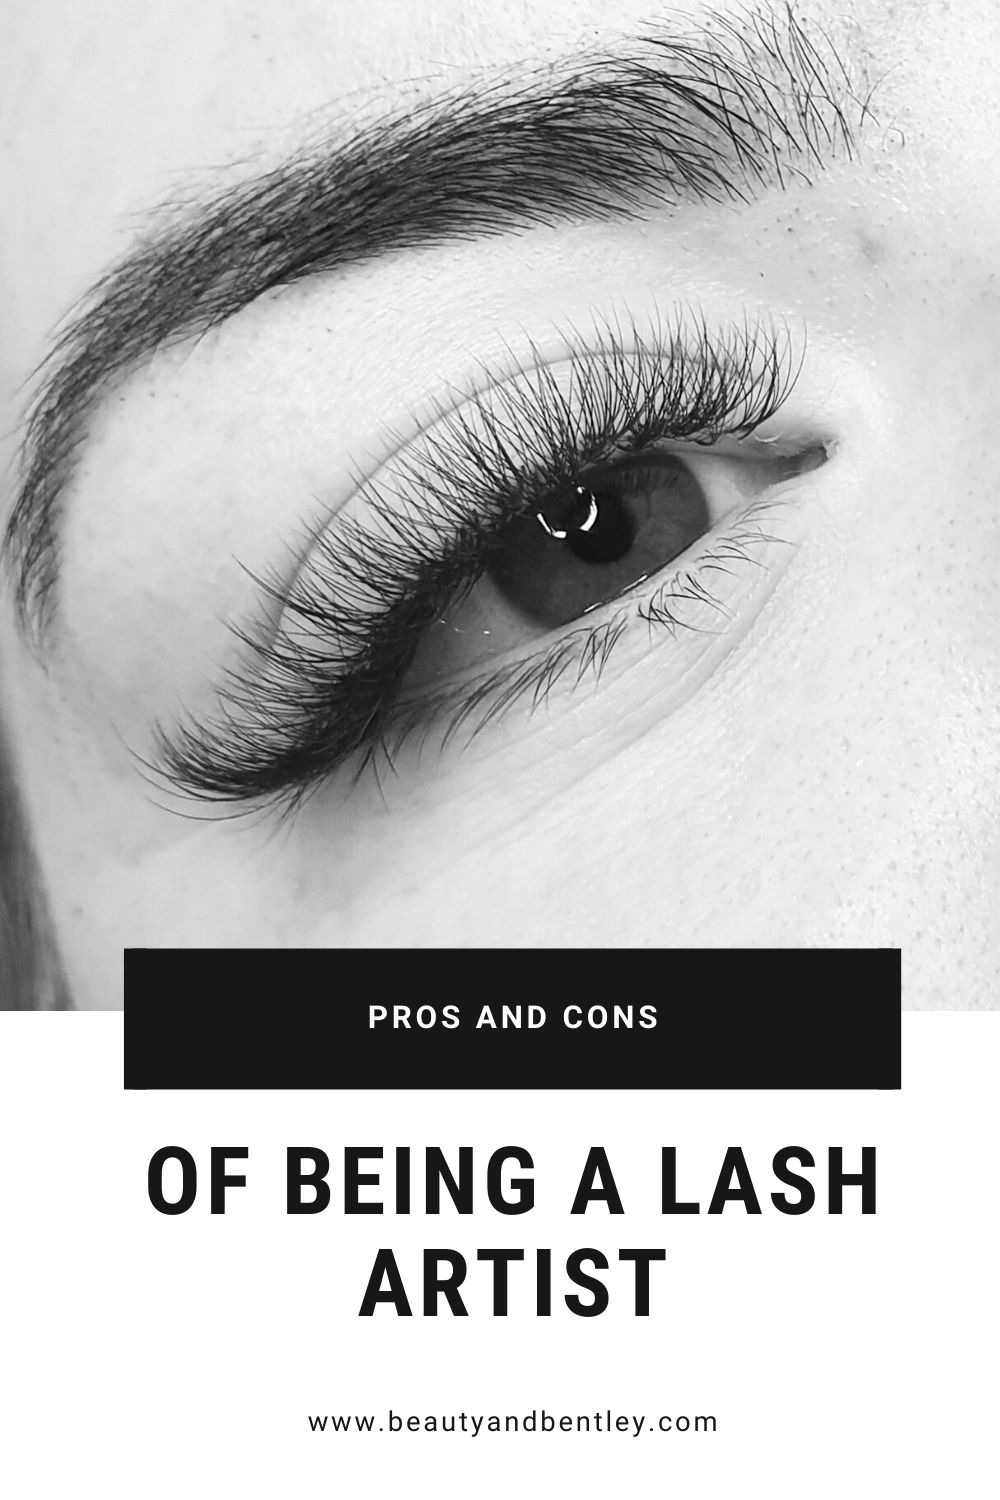 The pros and cons of being a lash artist